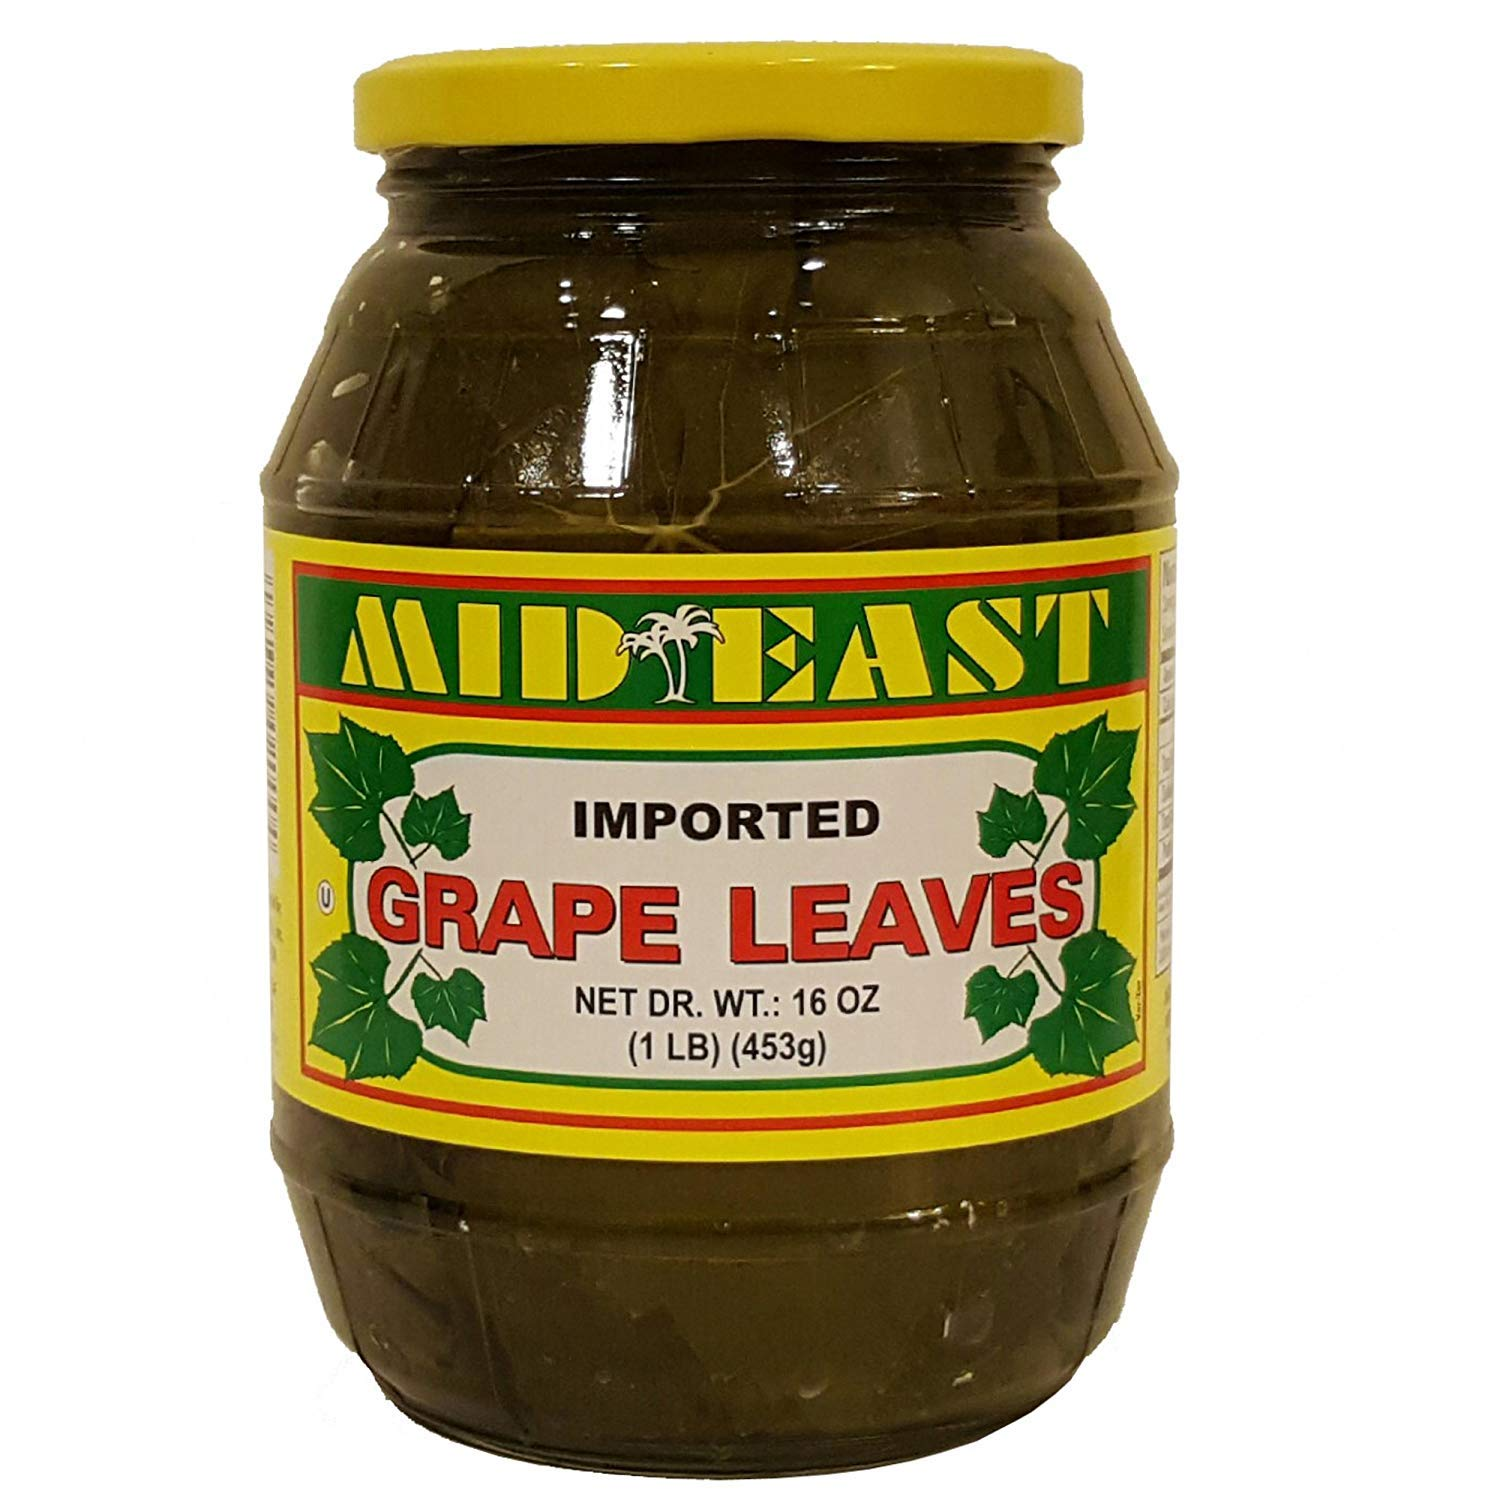 Mid East Premium California Style Grape Leaves In Glass Jar 1 Lb 453g Amazon Com Grocery Gourmet Food